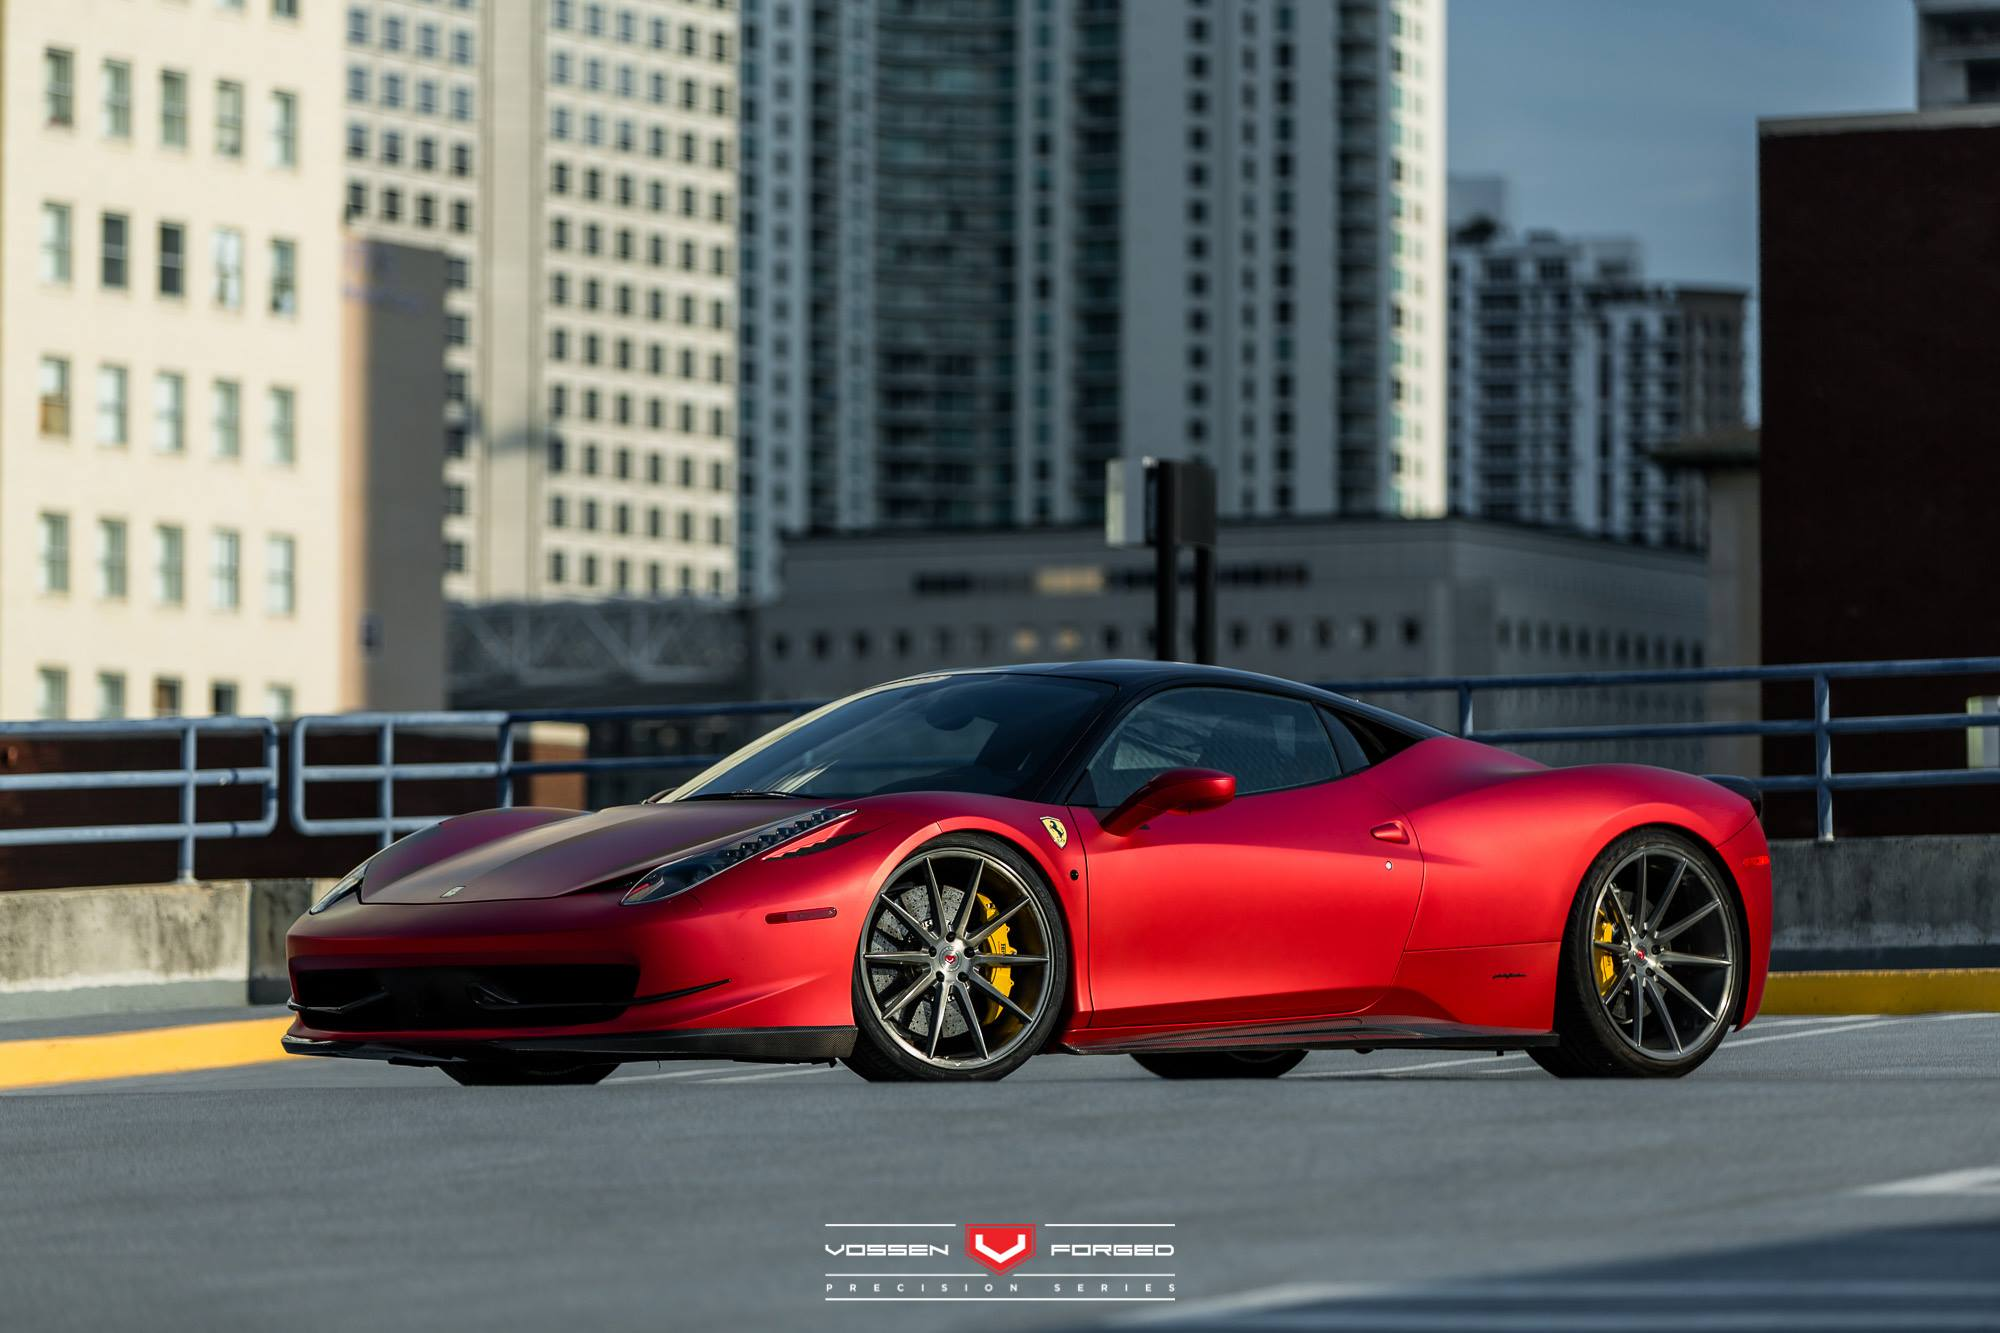 rosso fuoco opaco and bianco ferrari 458 italia duo with vossen wheels gtspirit. Black Bedroom Furniture Sets. Home Design Ideas